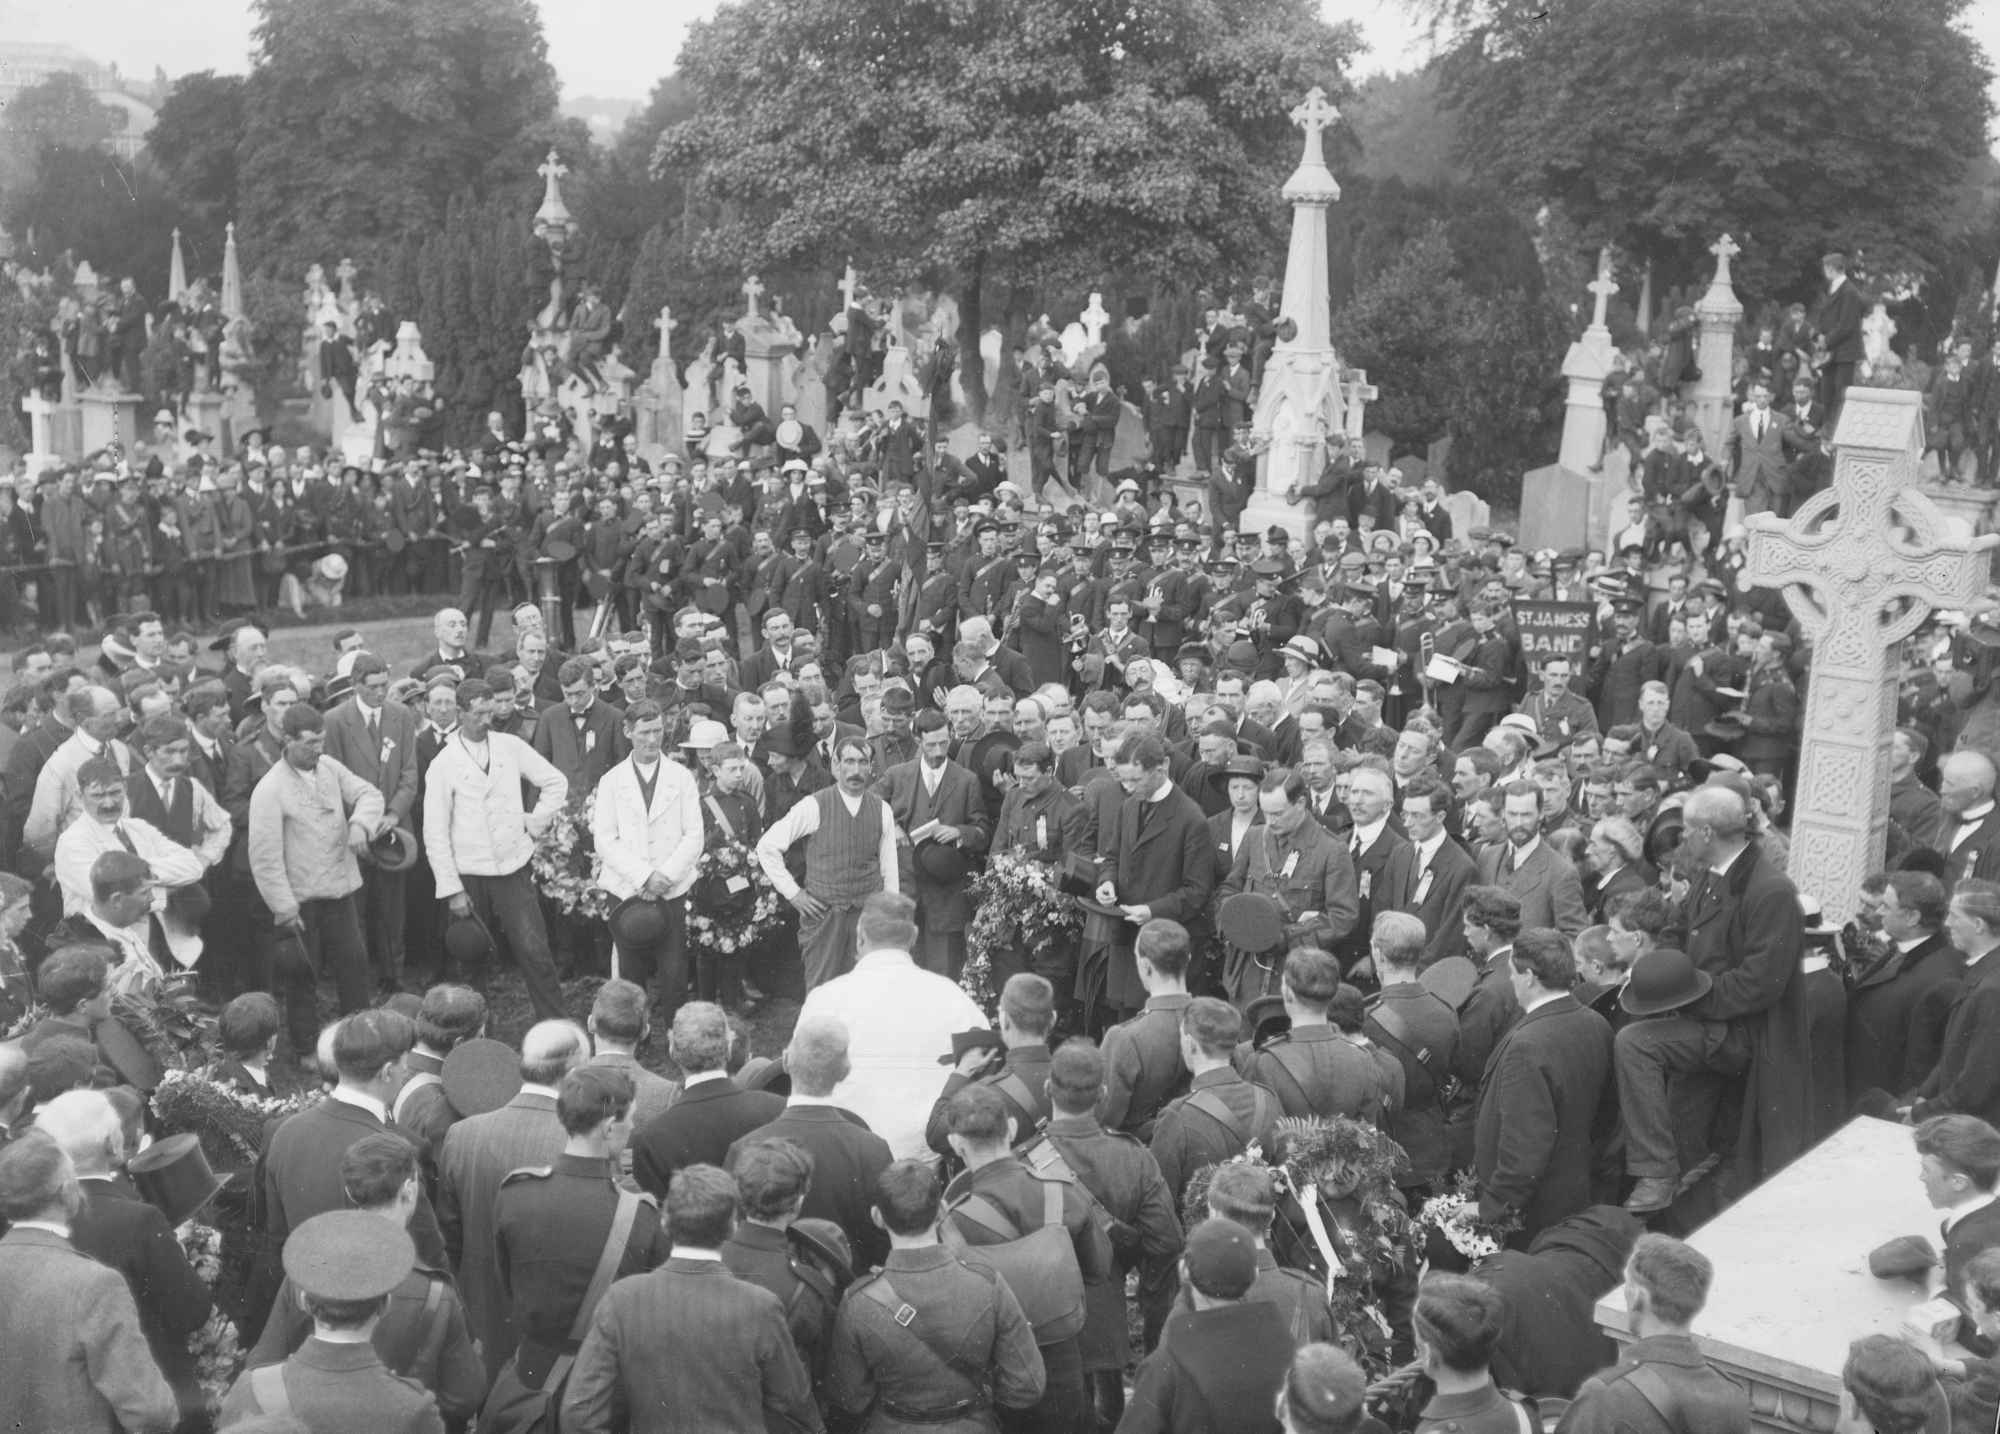 O'Donovan Rossa's funeral at  Glasnevin Cemetery in Dublin, with Pádraig Pearse (standing to the right of the priest, his hat in front of him), John MacBride (to the right of Pearse), and Tom Clarke (three to the right of MacBride, in profile).